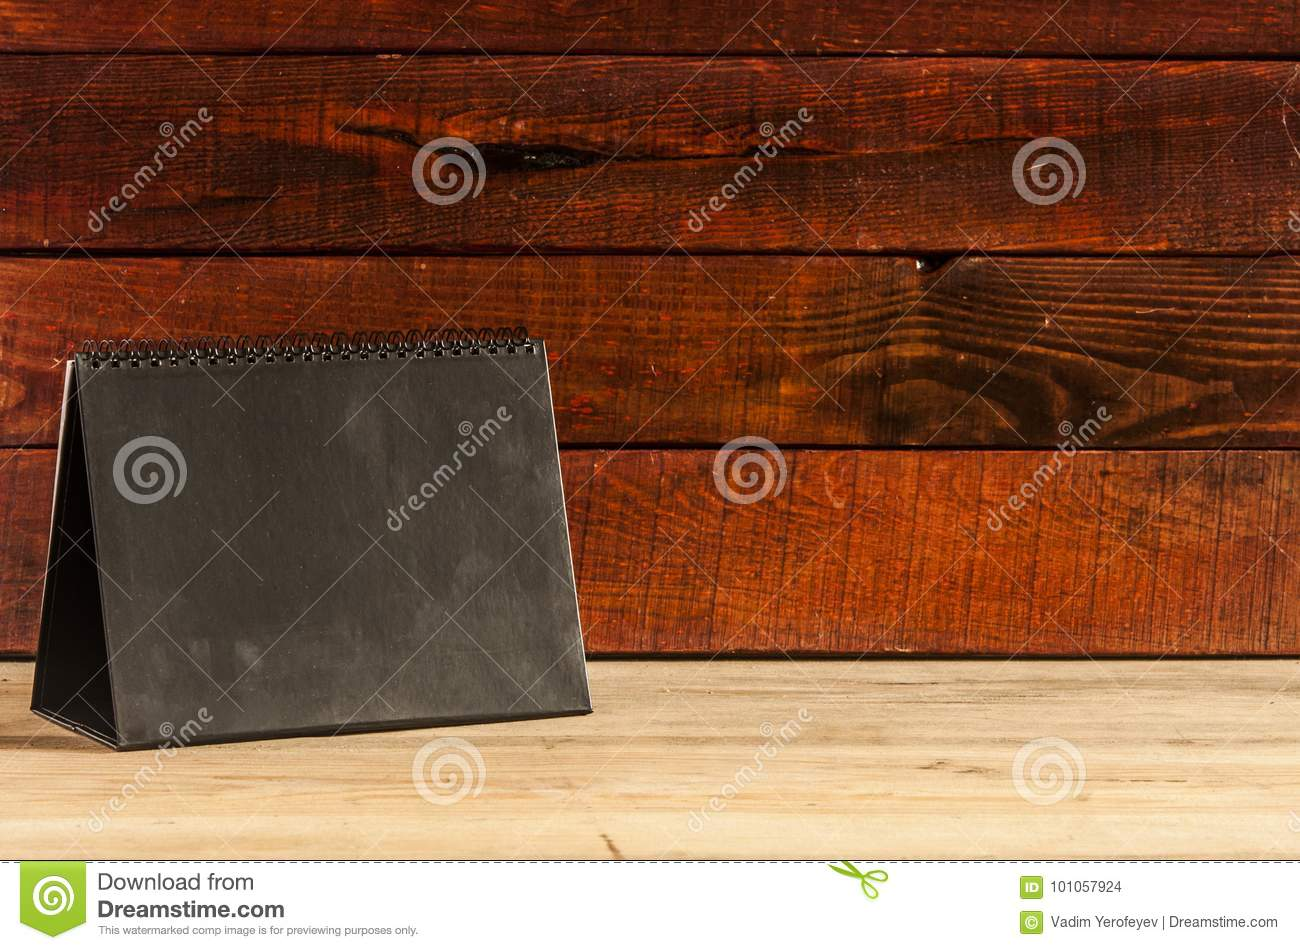 Blank Desk Calendar On Old Wooden Table Stock Photo Image Of Event